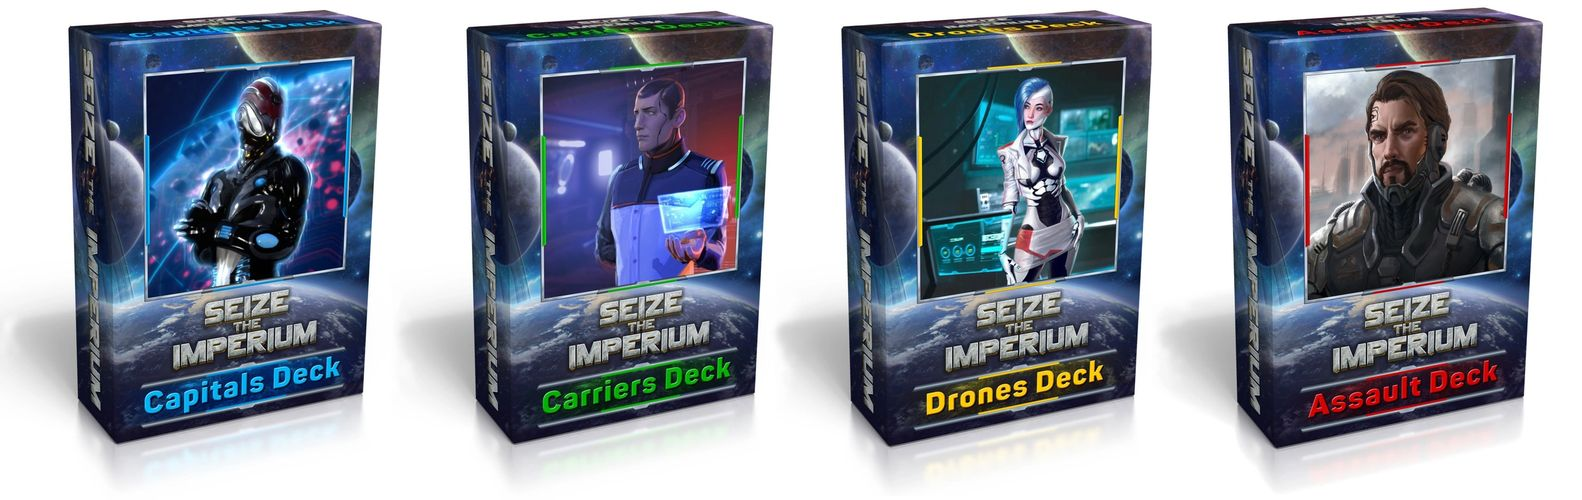 Core Starter set now available on Kickstarter through March 27th1